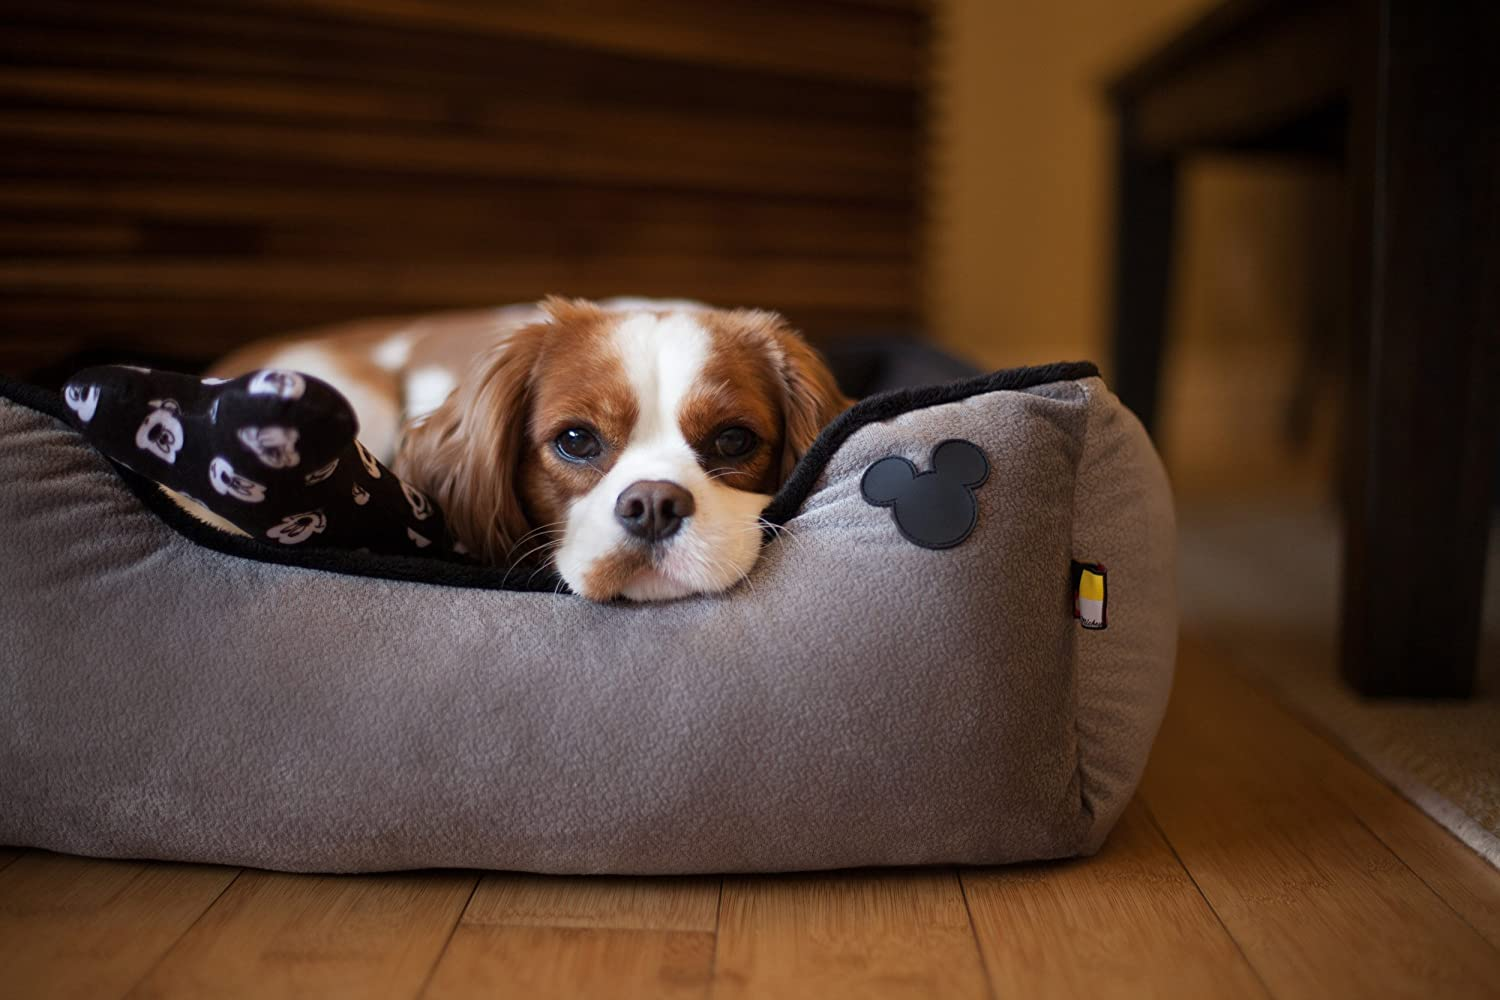 Amazon.com : Disney Mickey Mouse Rectangular Cuddler with Toy Bone, Gray, 24 x 22/One Size : Pet Supplies